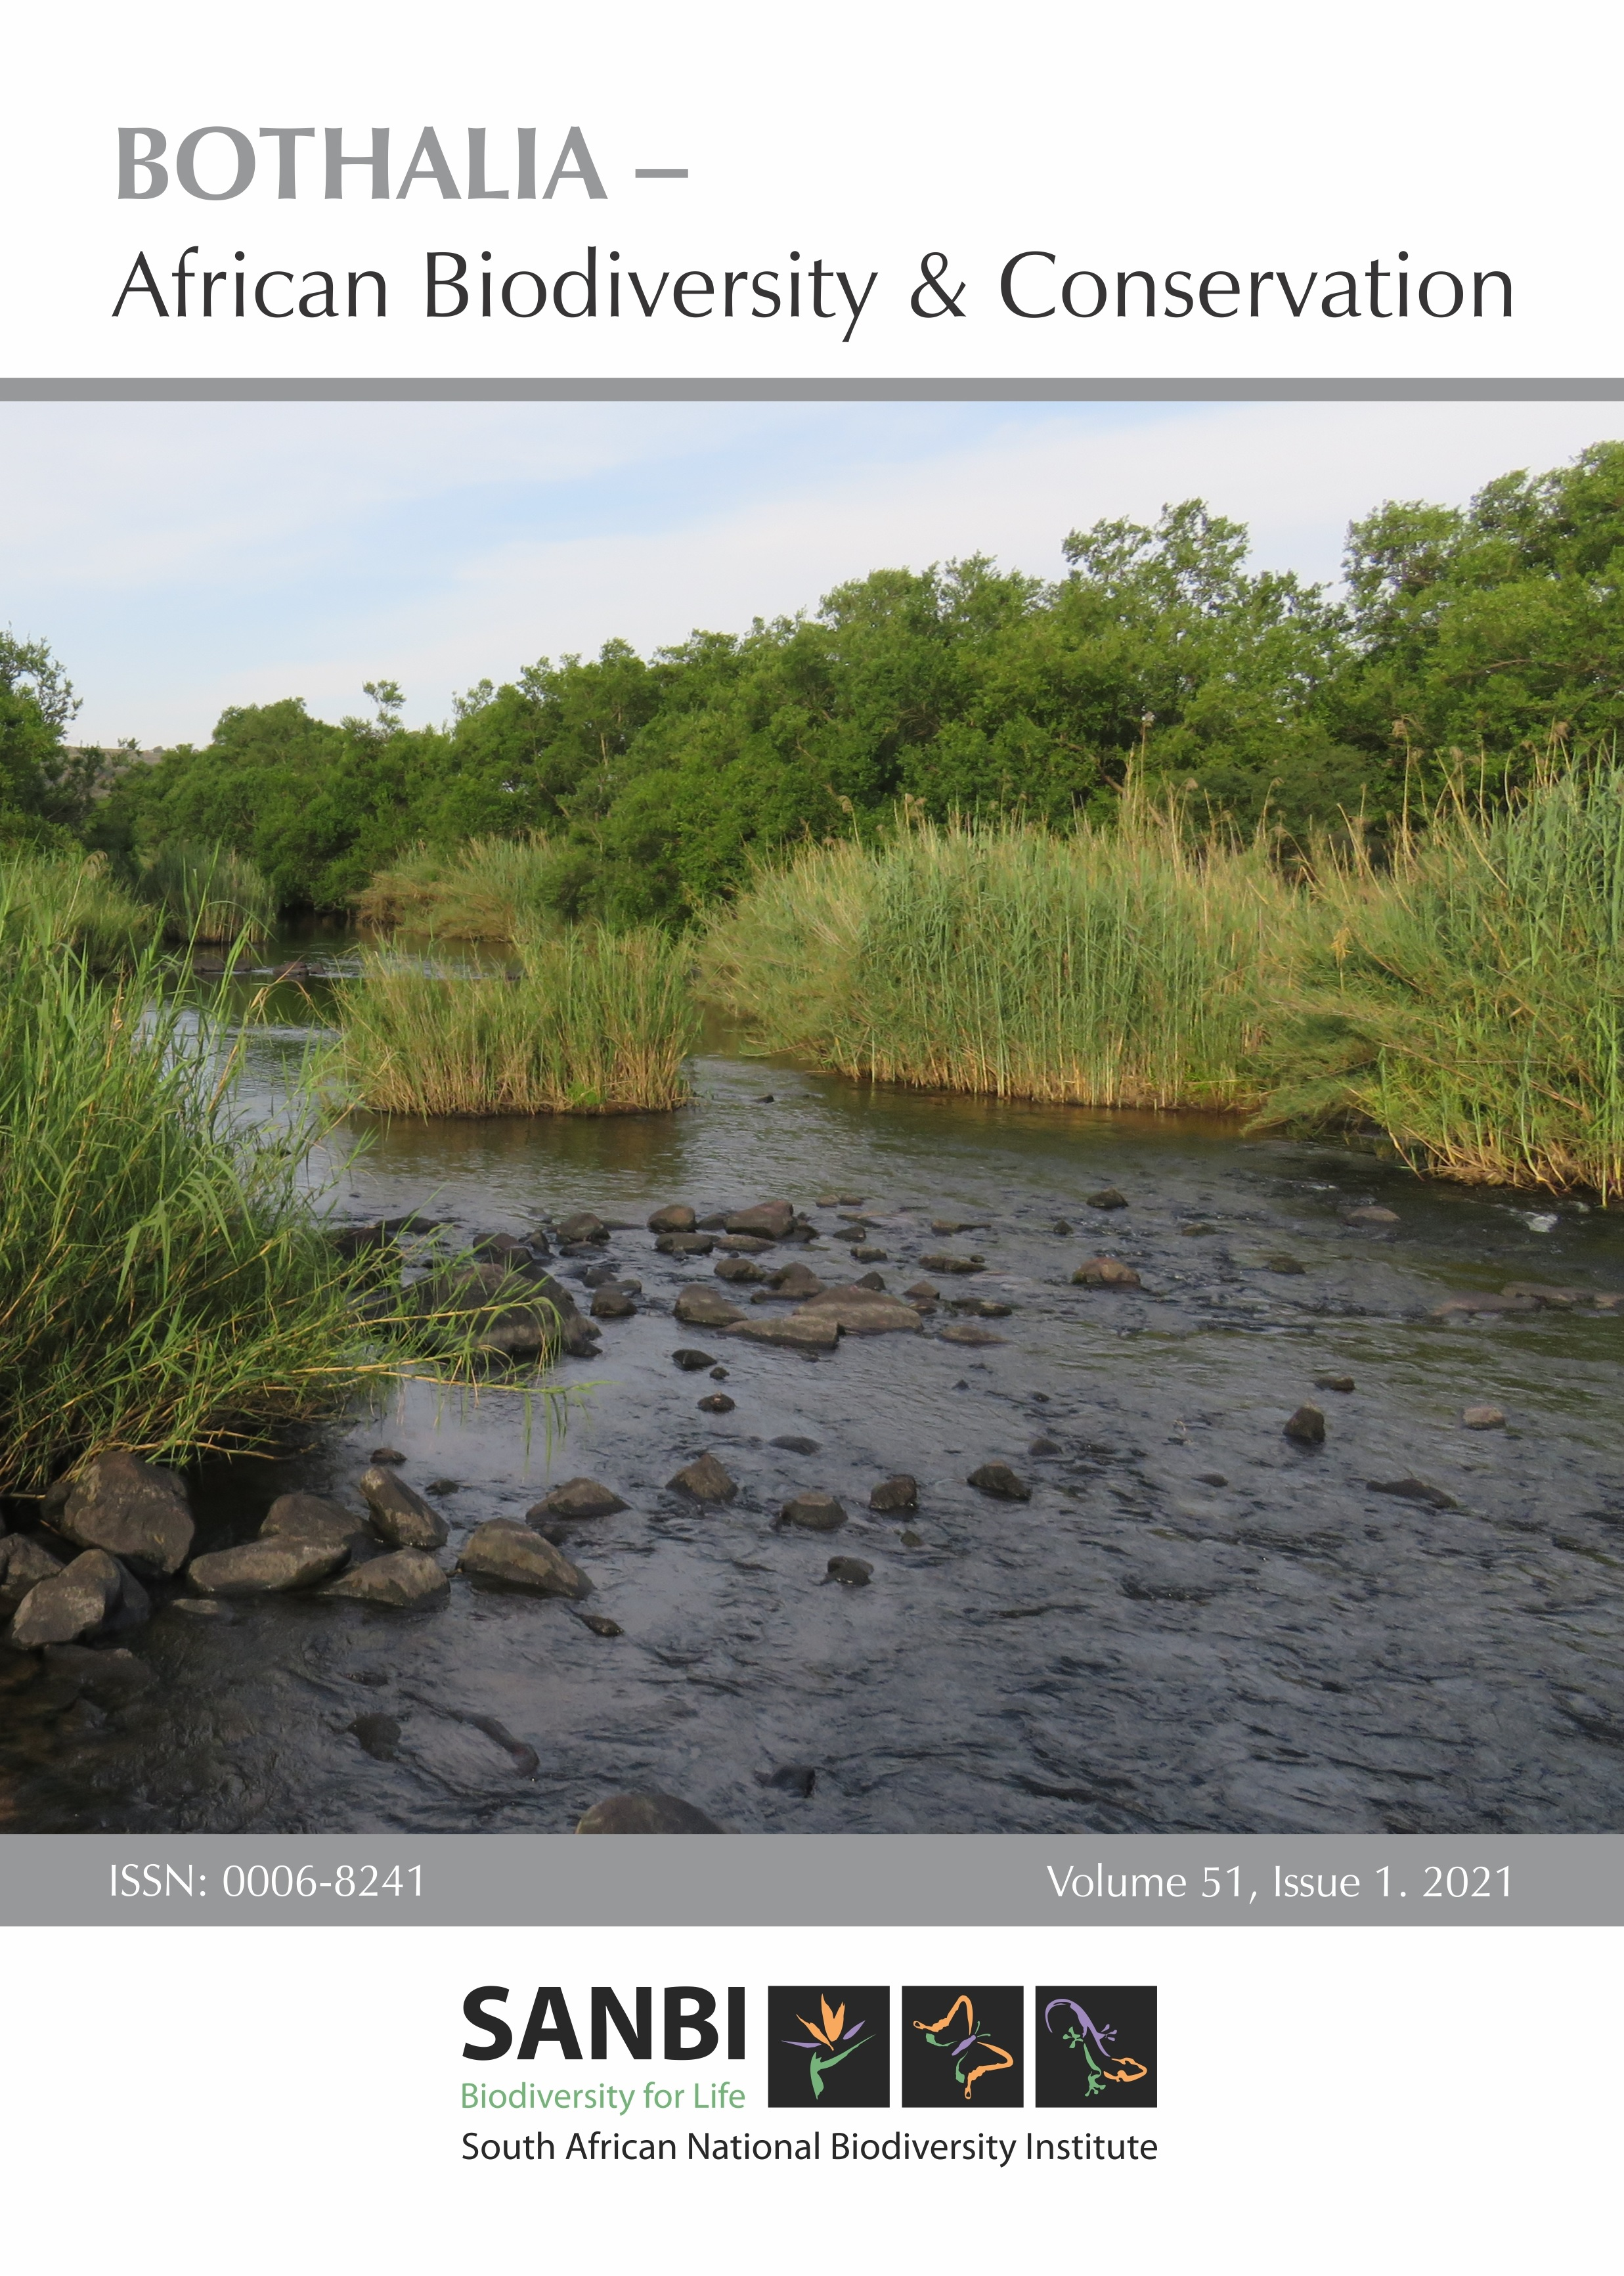 View Vol. 51 No. 1 (2021): Bothalia, African Biodiversity & Conservation Special Issue